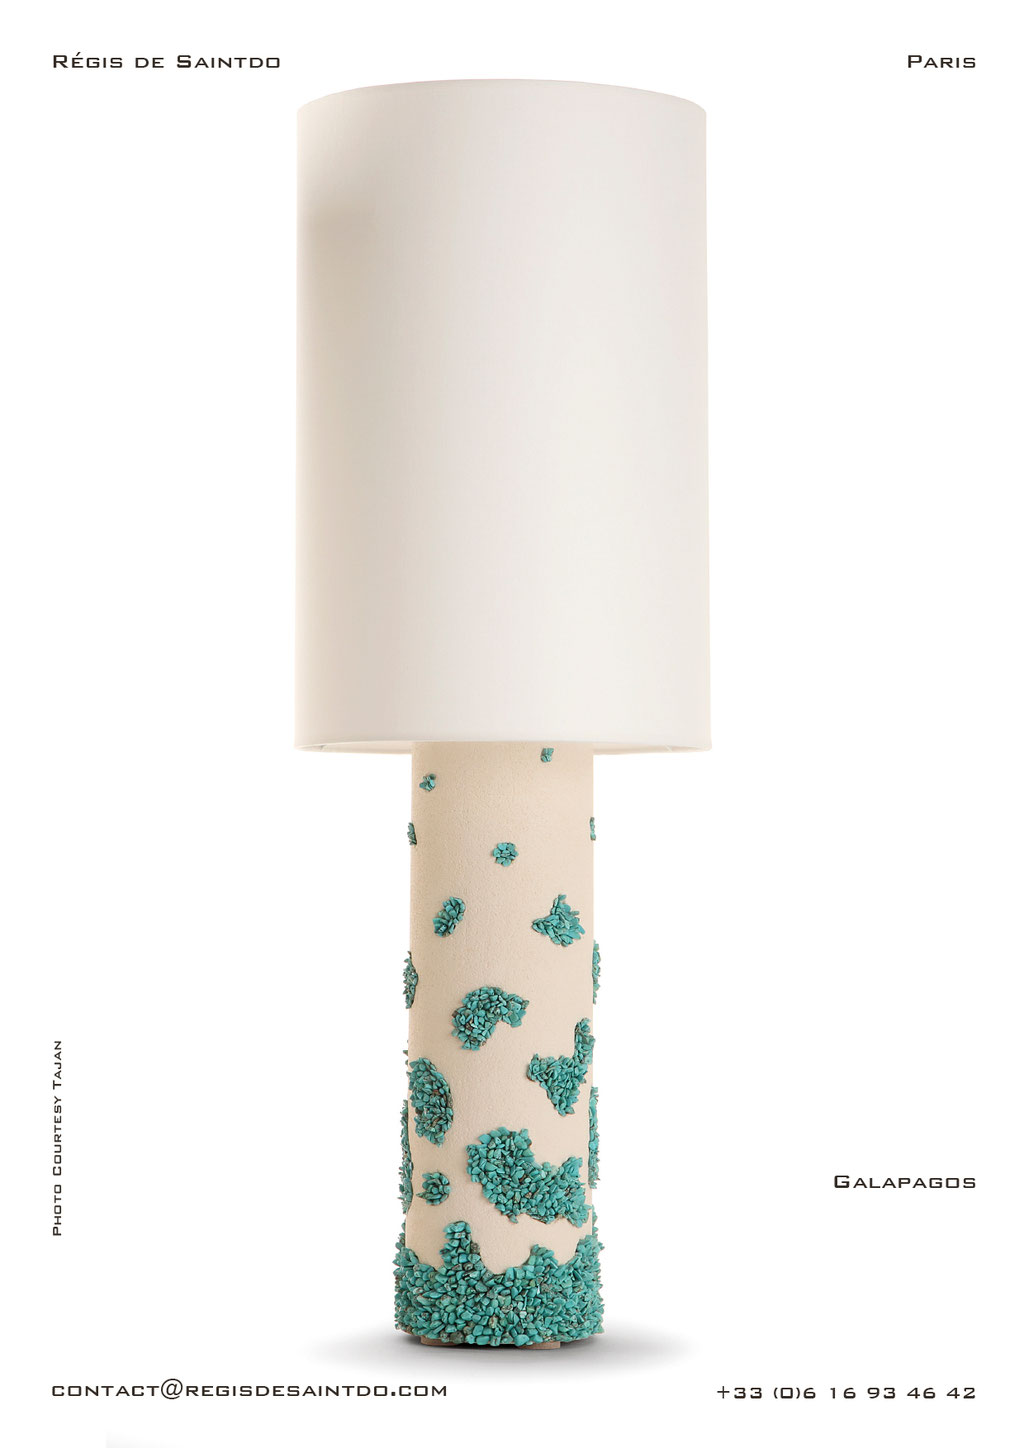 Lamp Galapagos ceramic, turquoises howlites- hand made